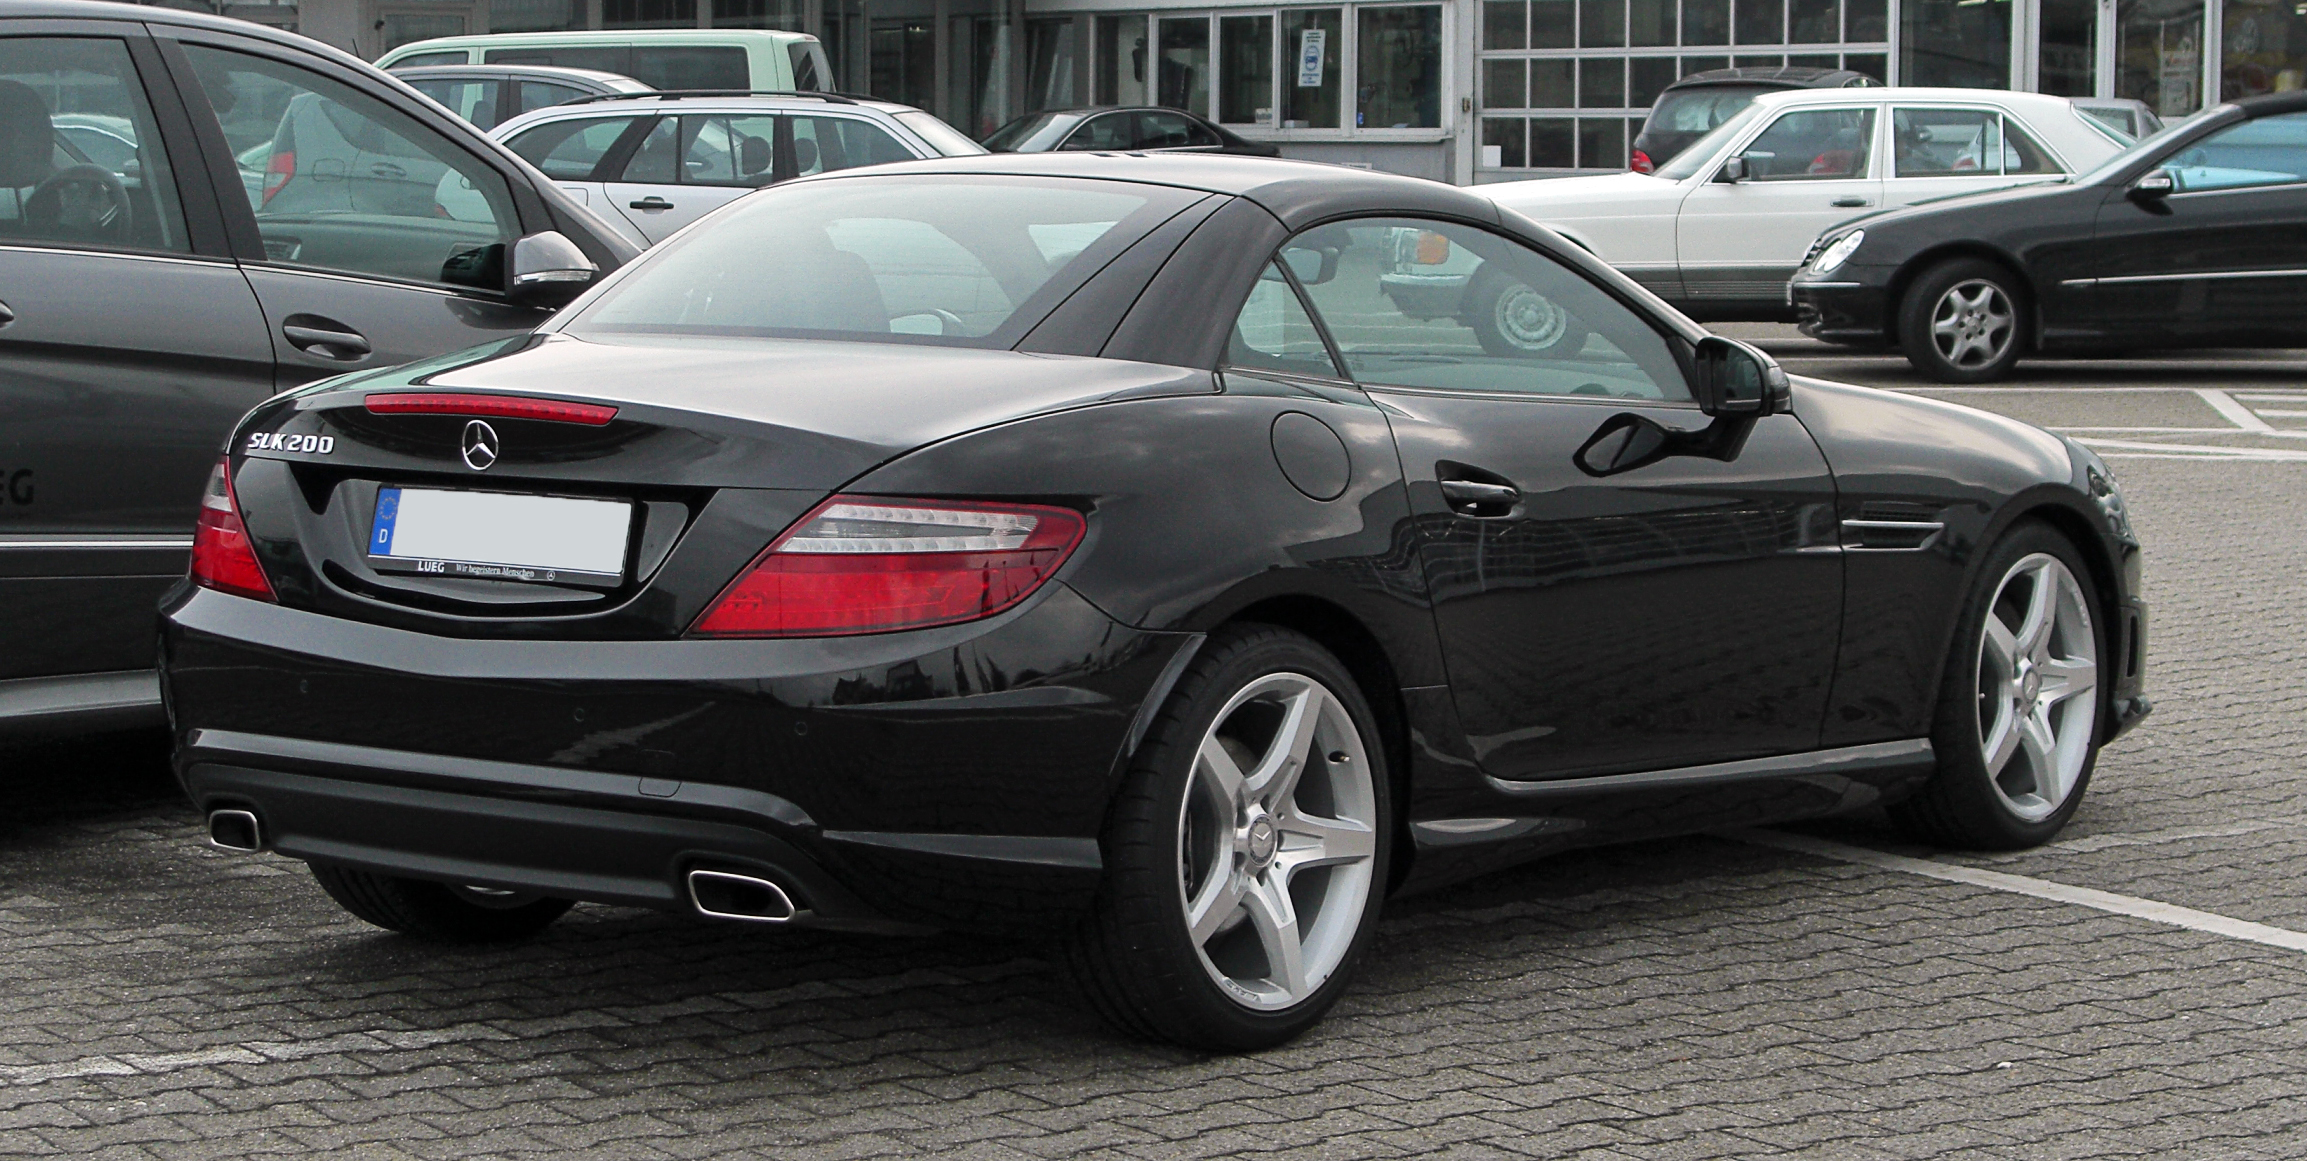 mercedes benz slk 200 blueefficiency sport paket amg r 172 heckansicht 1 april 2011. Black Bedroom Furniture Sets. Home Design Ideas